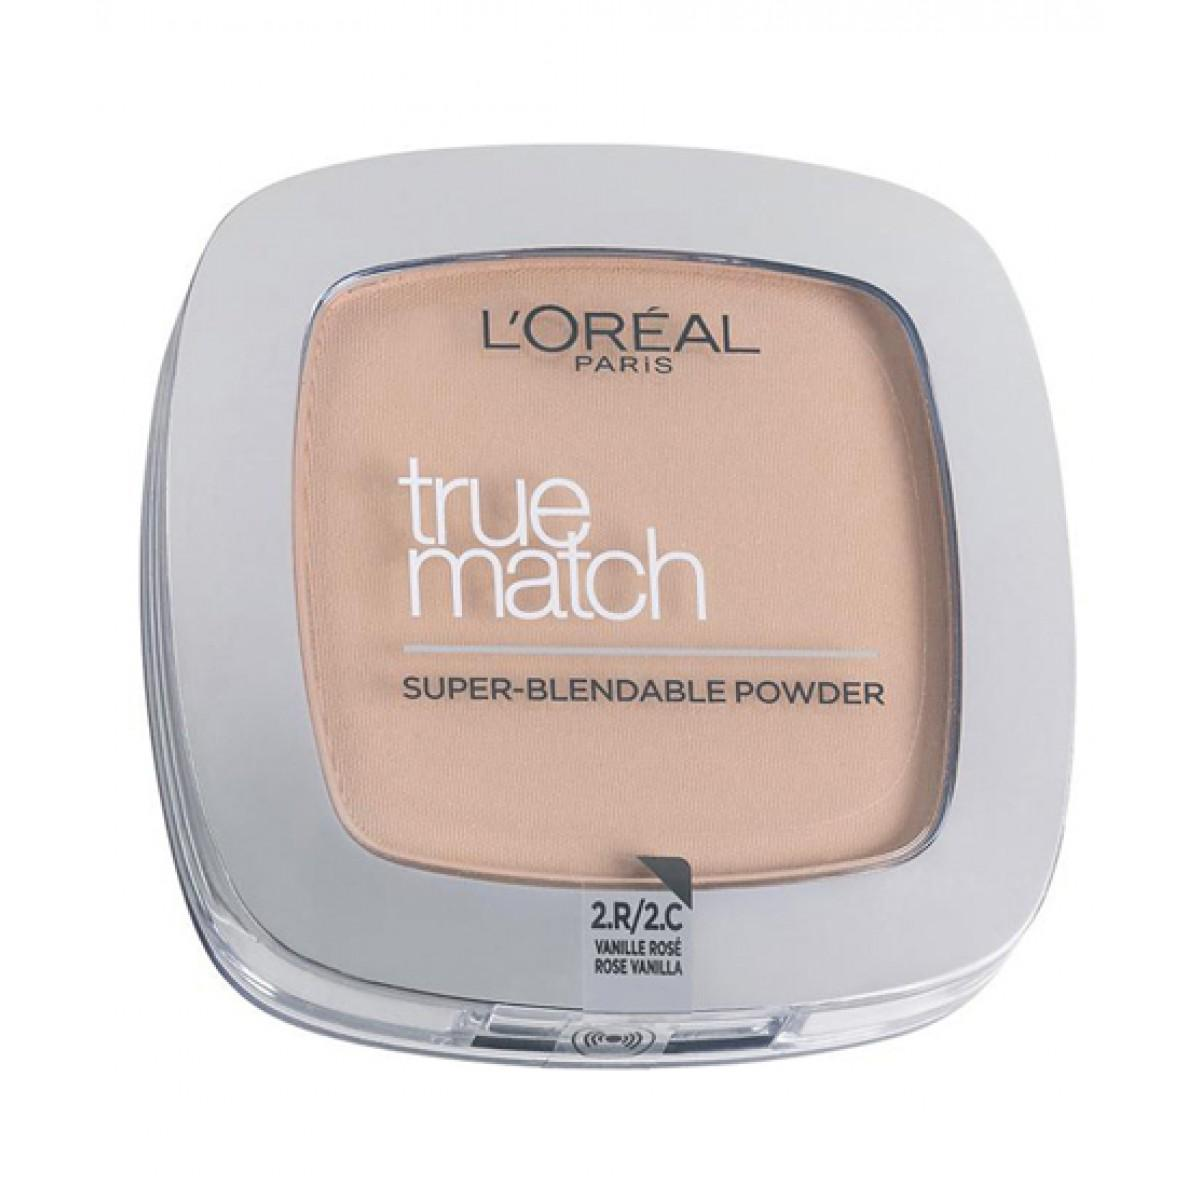 LOREAL TRUE MATCH VANILLA ROSE CREAMY POWDER